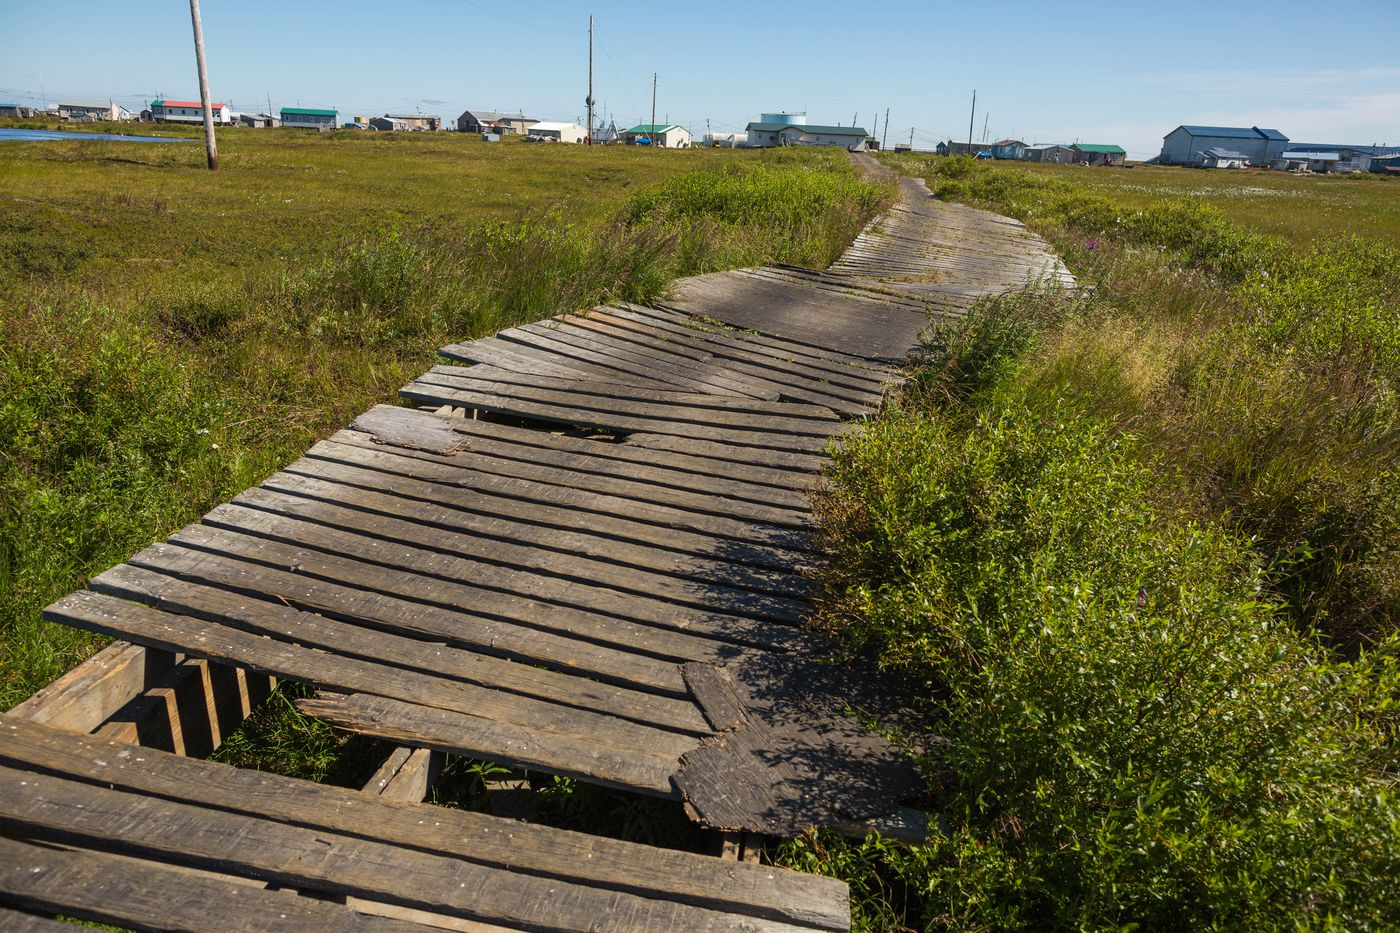 The boardwalk leading from the Newtok airport to the clinic, on Tuesday, August 4, 2015. With efforts underway to move the village to a new site, the existing infrastructure has been neglected.